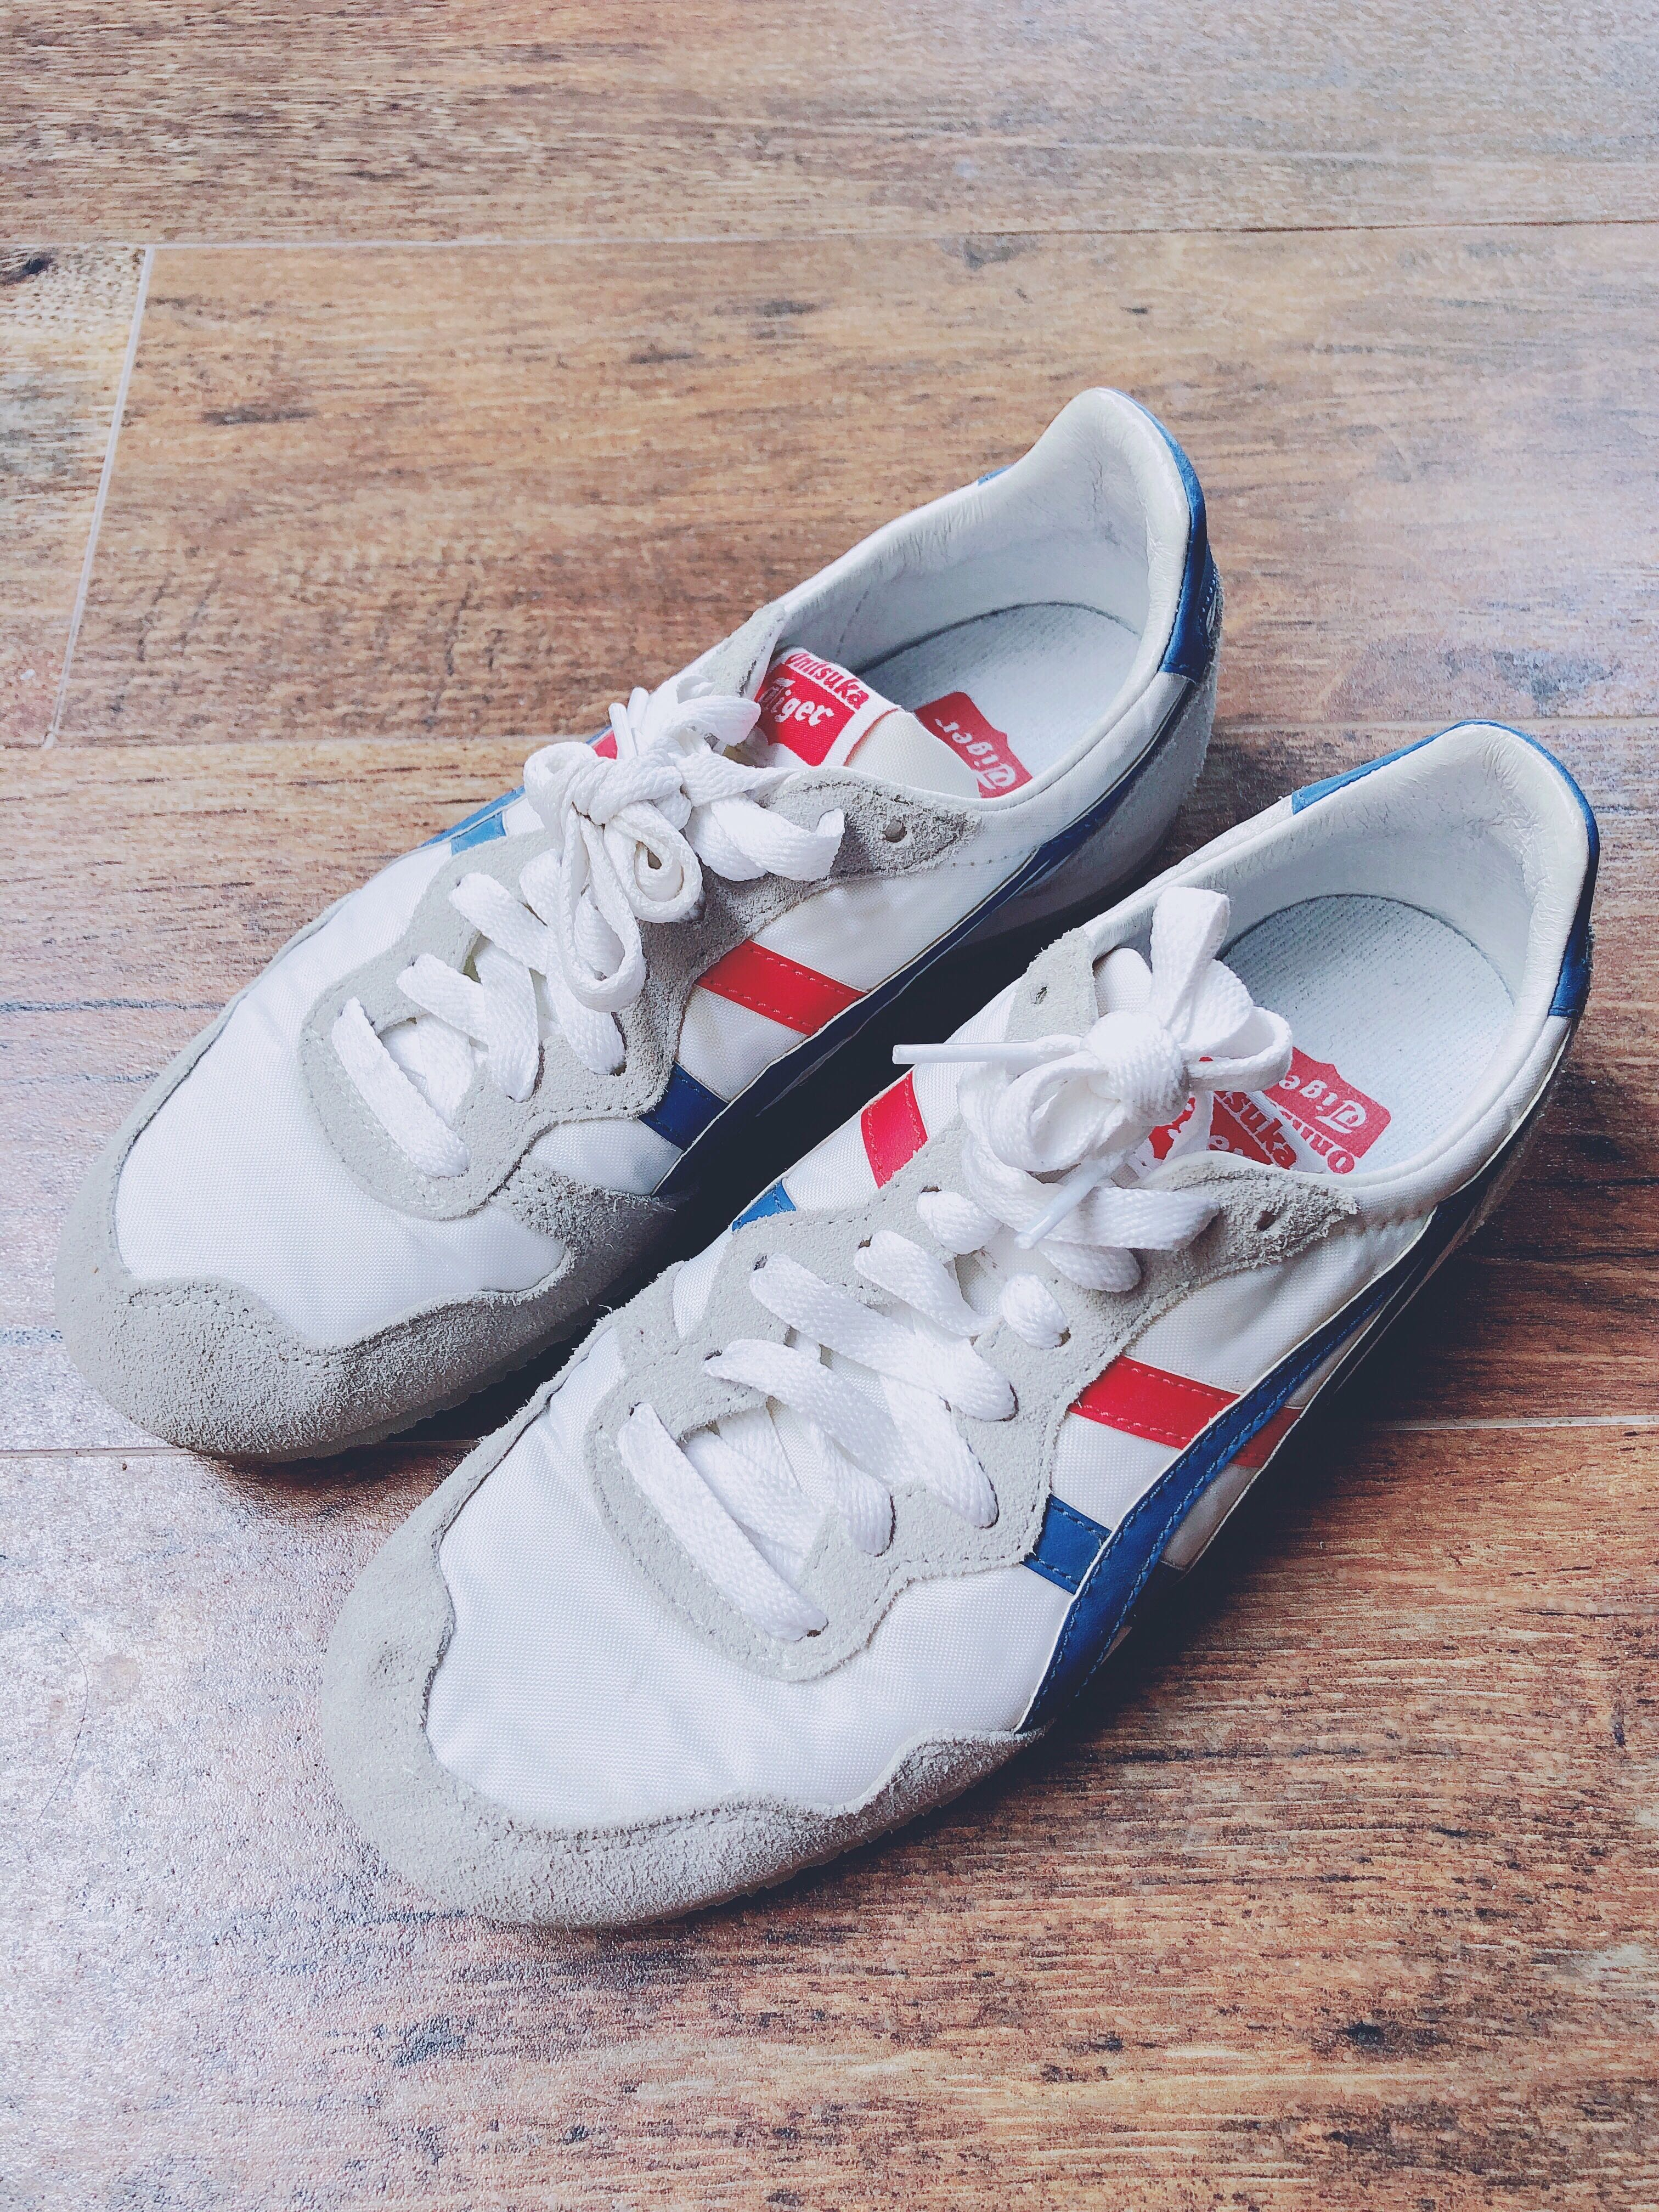 bcda7cd48675 Authentic Onitsuka Tiger s Women s Serrano Sneakers in Blue White ...